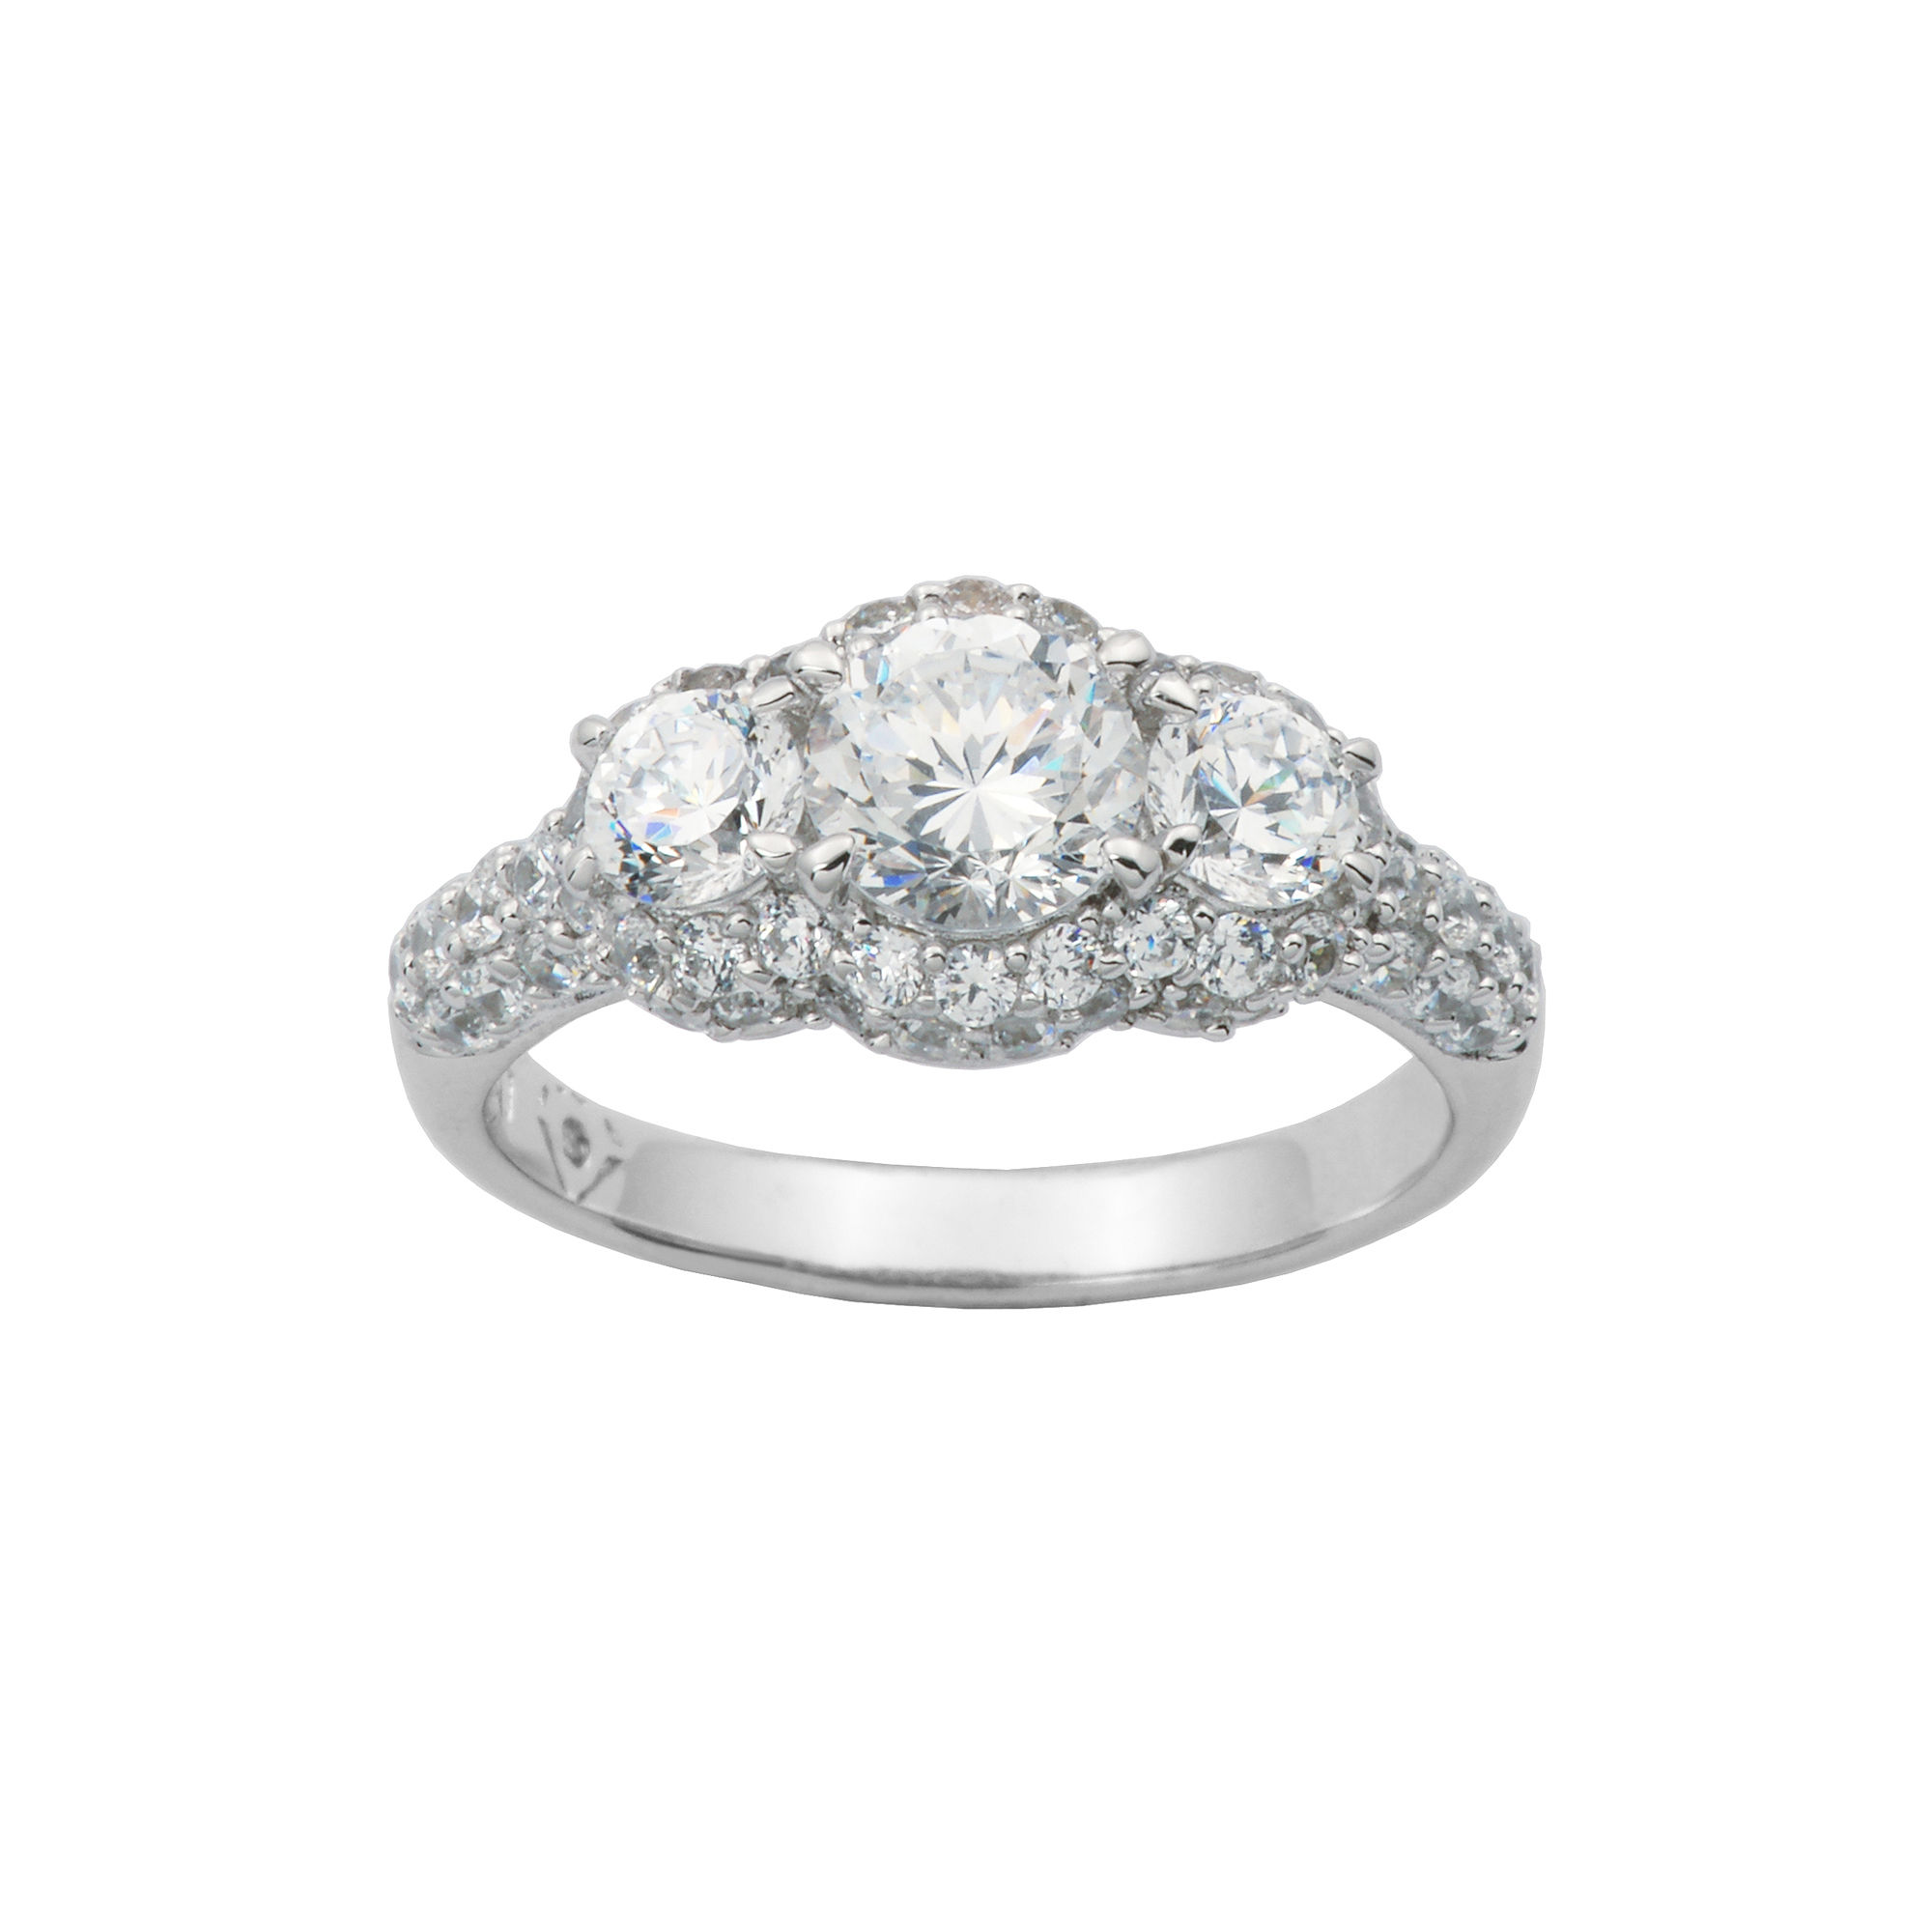 100 Facets by DiamonArt Sterling Silver 3-Stone Cubic Zirconia Cocktail Ring